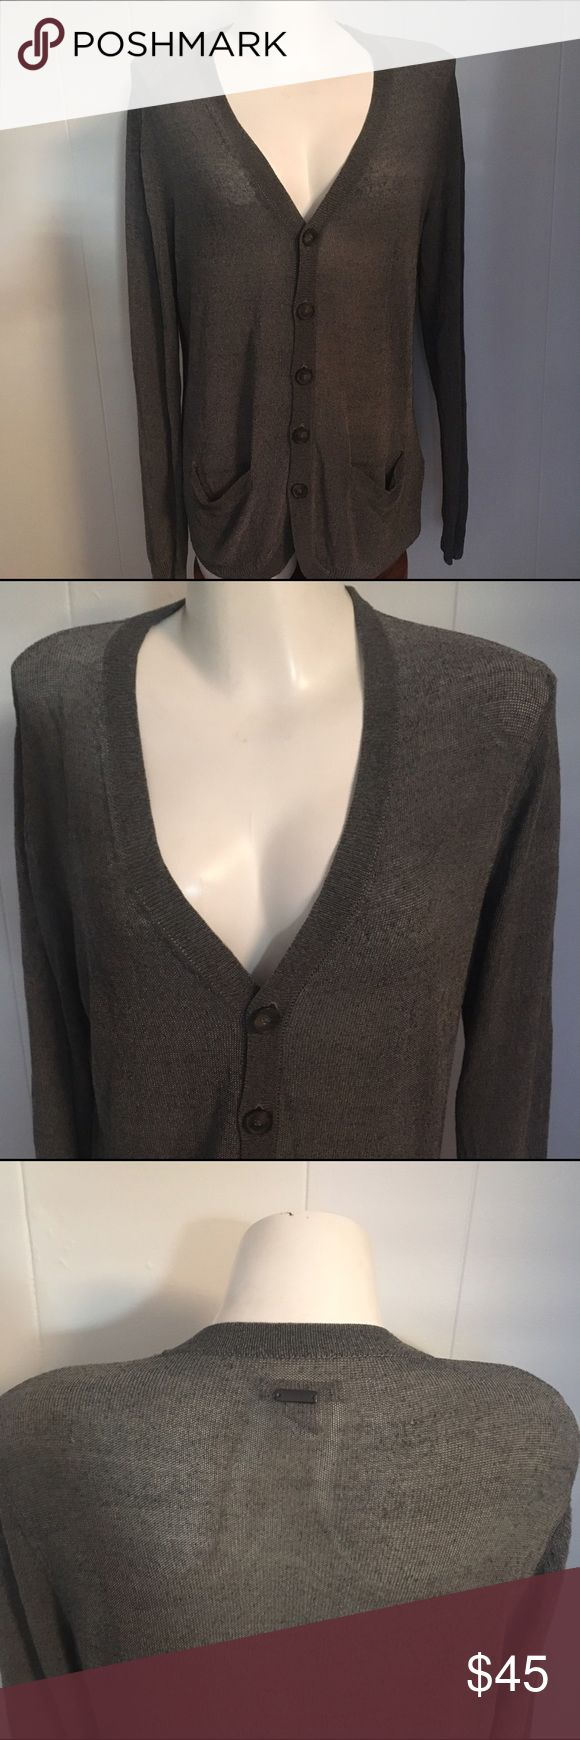 Adidas SLVR Metallic Silver Cardigan Adidas SLVR Metallic Silver Cardigan. Great condition. Worn only a few times. Makes a great lightweight yoga cardi or over t shirt and jeans! adidas Sweaters Cardigans